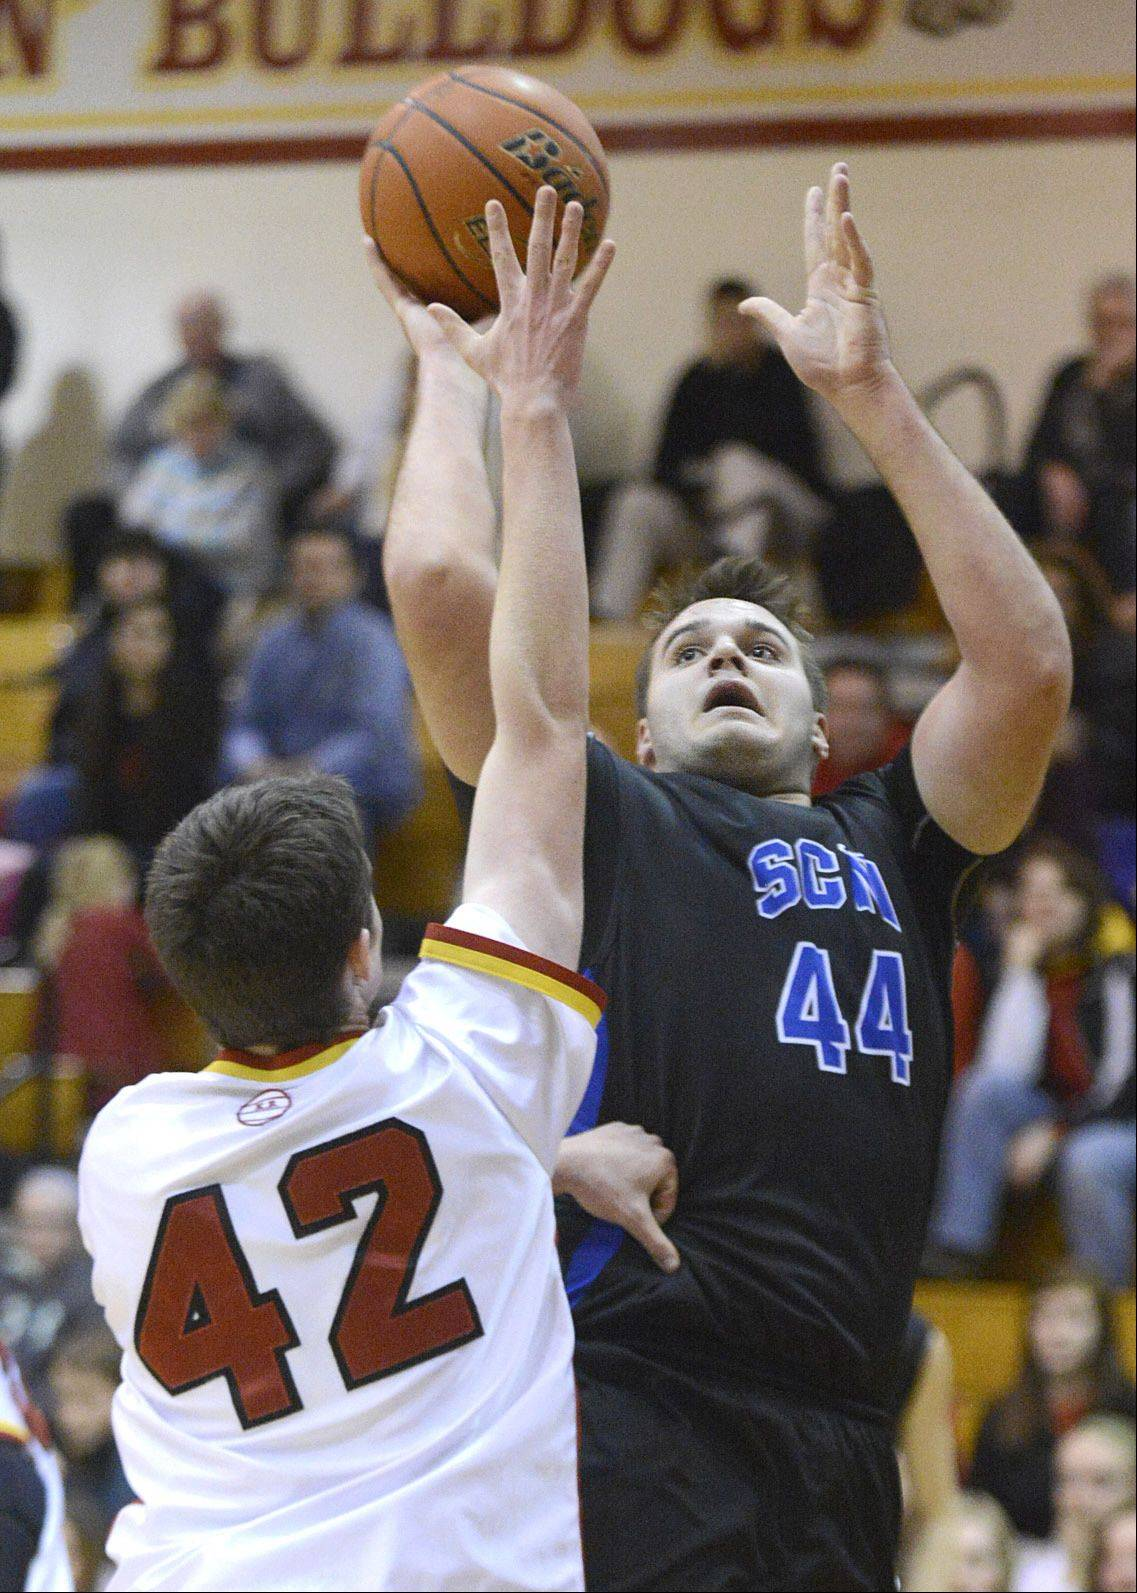 St. Charles North's Chase Gianacakos shoots over a block by Batavia's Ryan Olson in the second quarter.